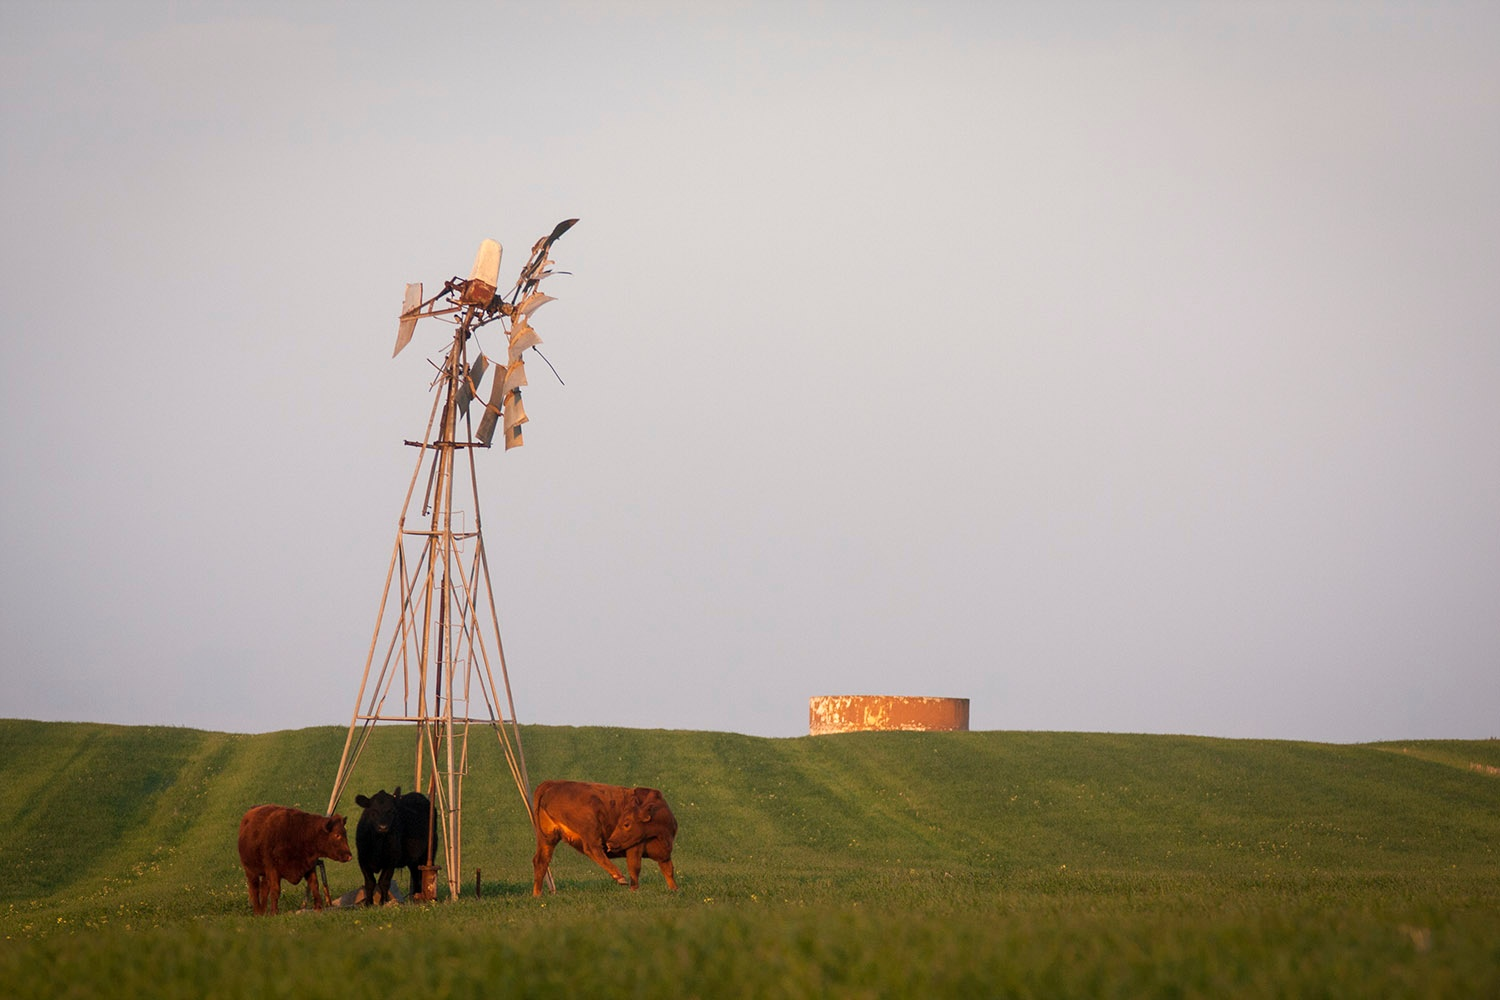 Kipheuwel Windmill by hassner